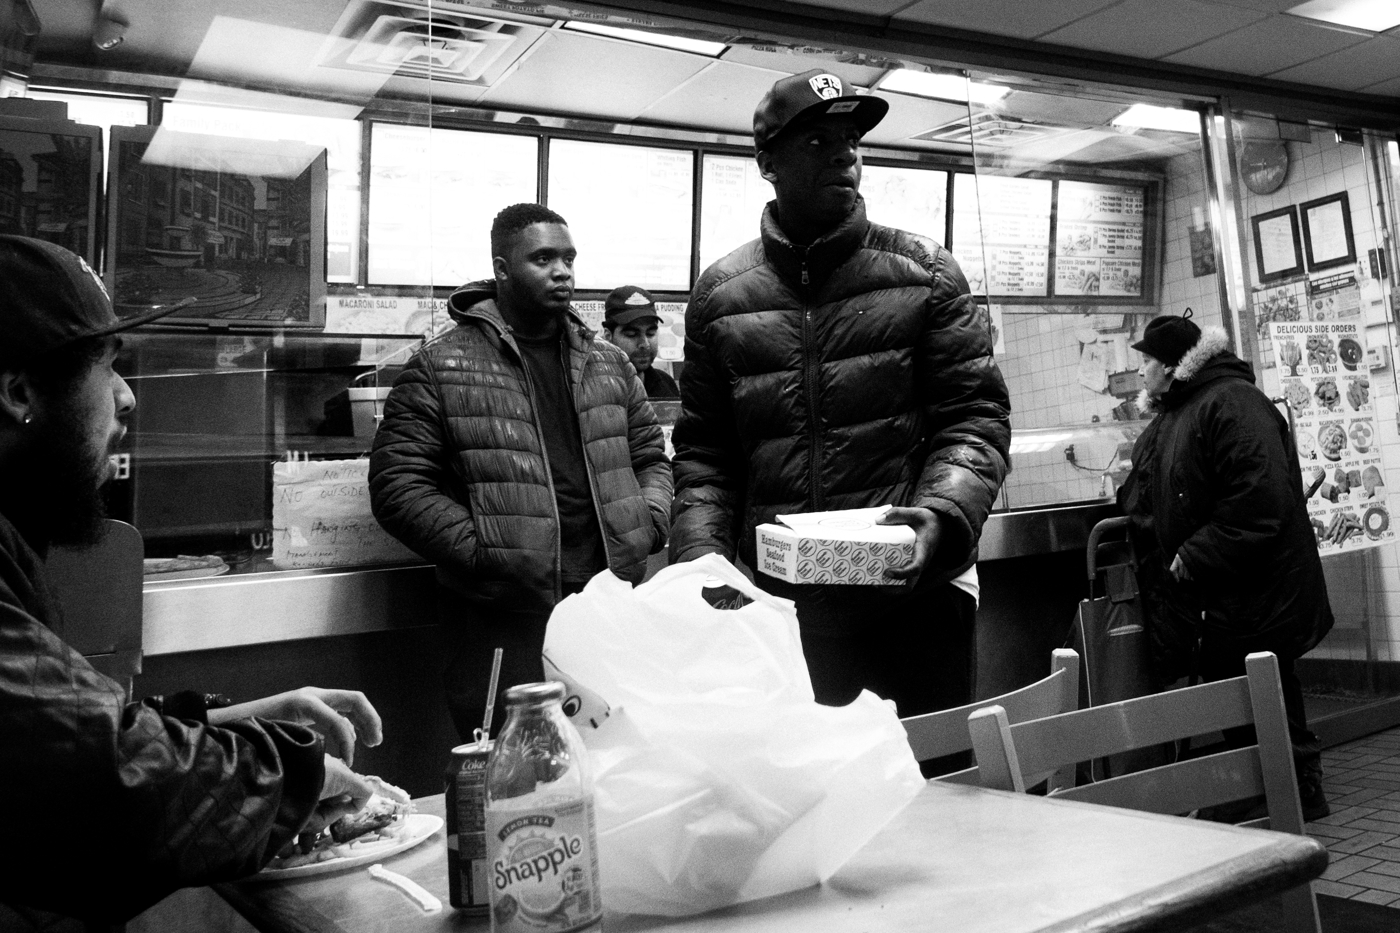 People eat and wait for their orders at the Kennedy's Fried Chicken shop on Broadway on the border between Bushwick and Bed-Stuy in New York.